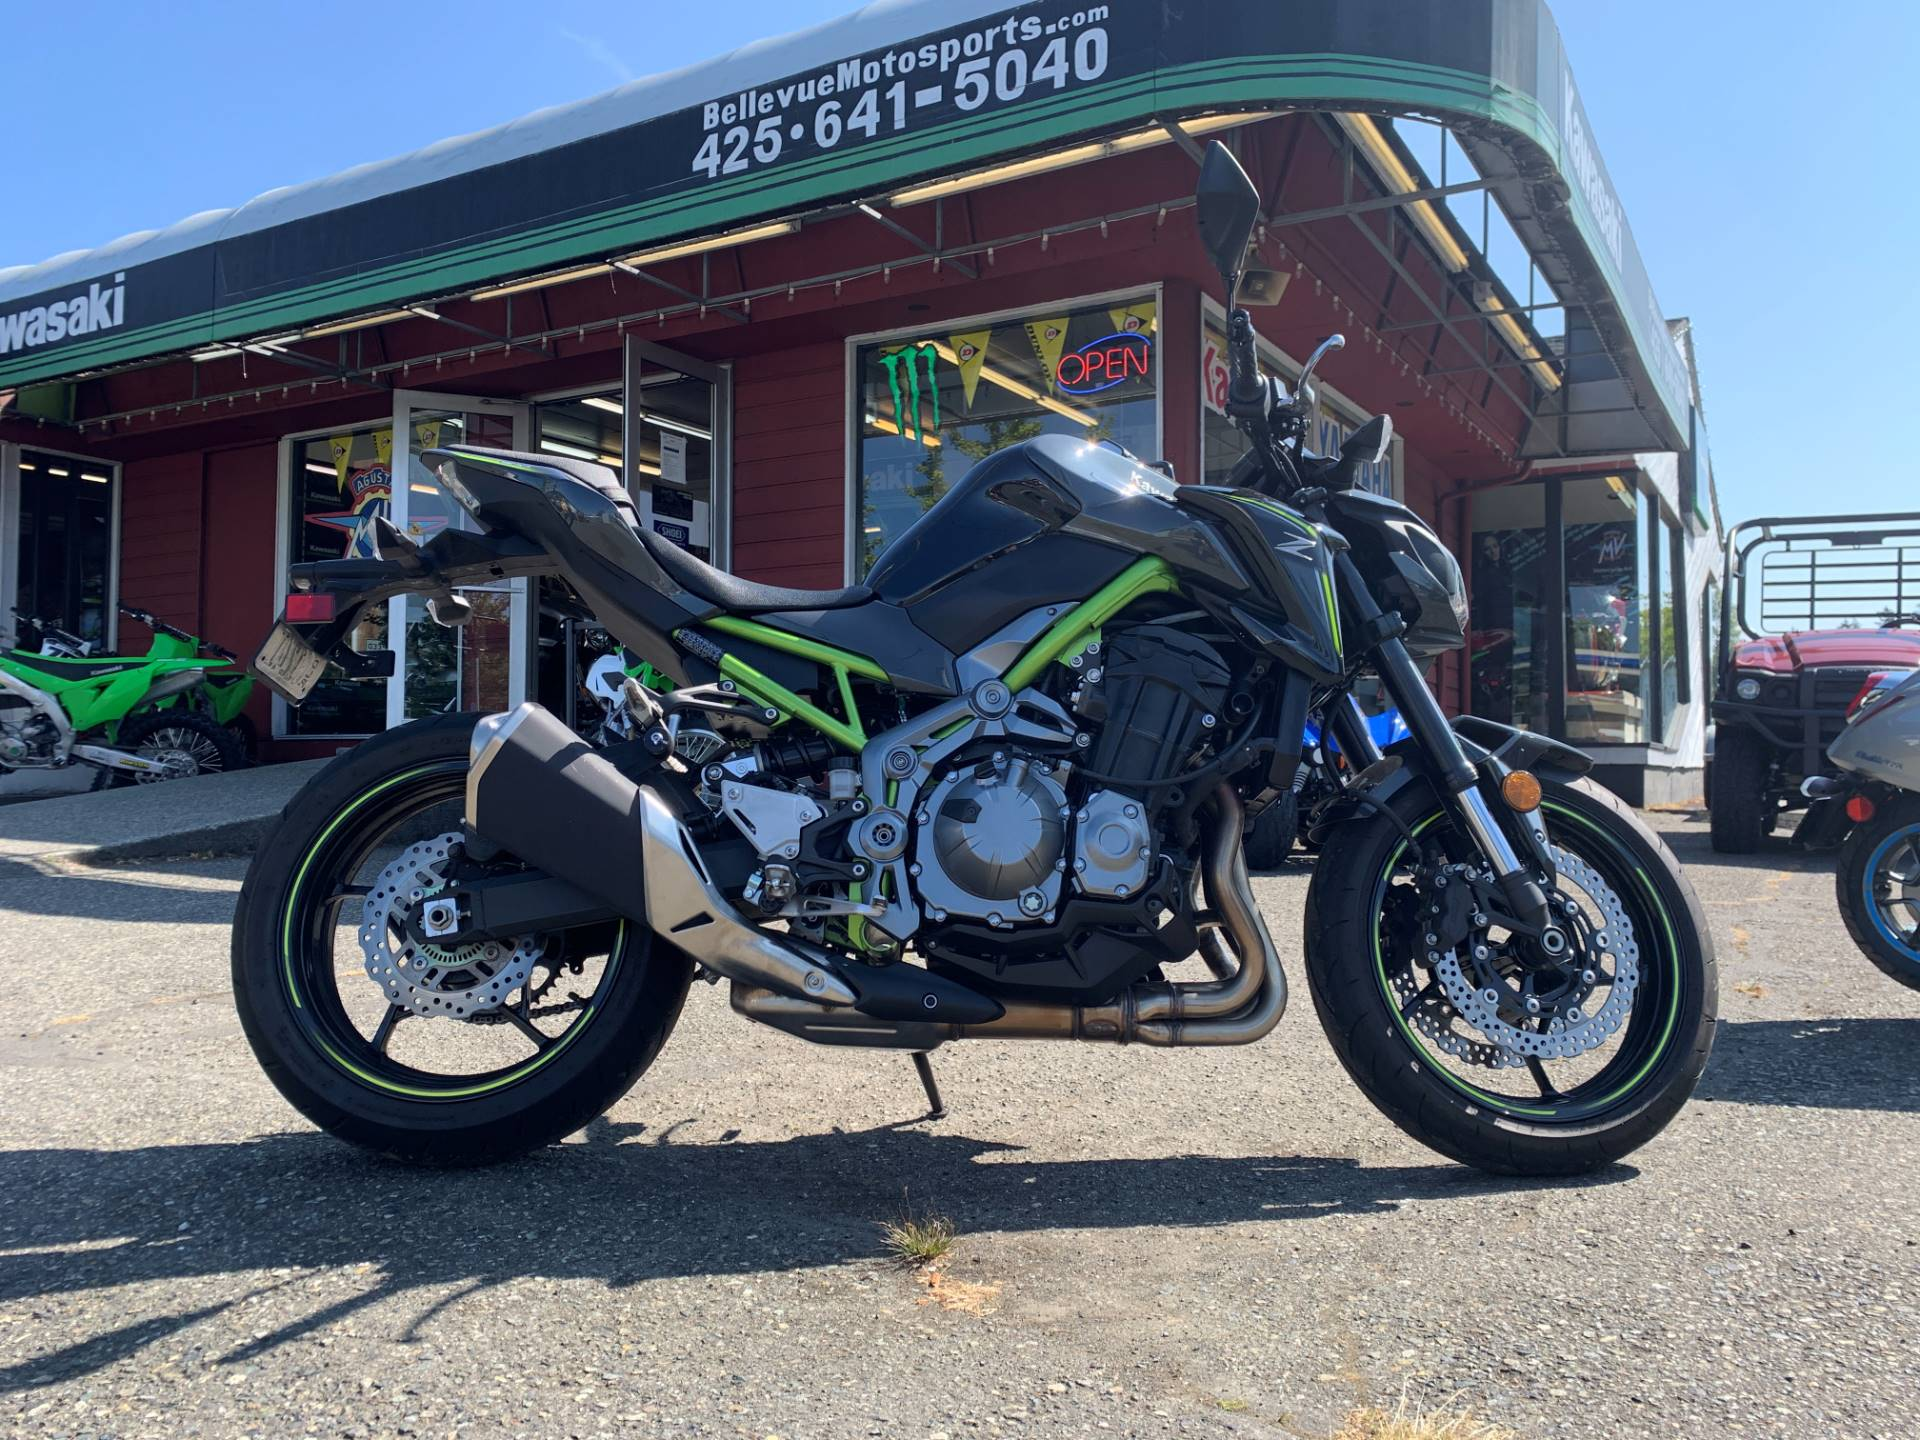 2017 Kawasaki Z900 in Bellevue, Washington - Photo 1